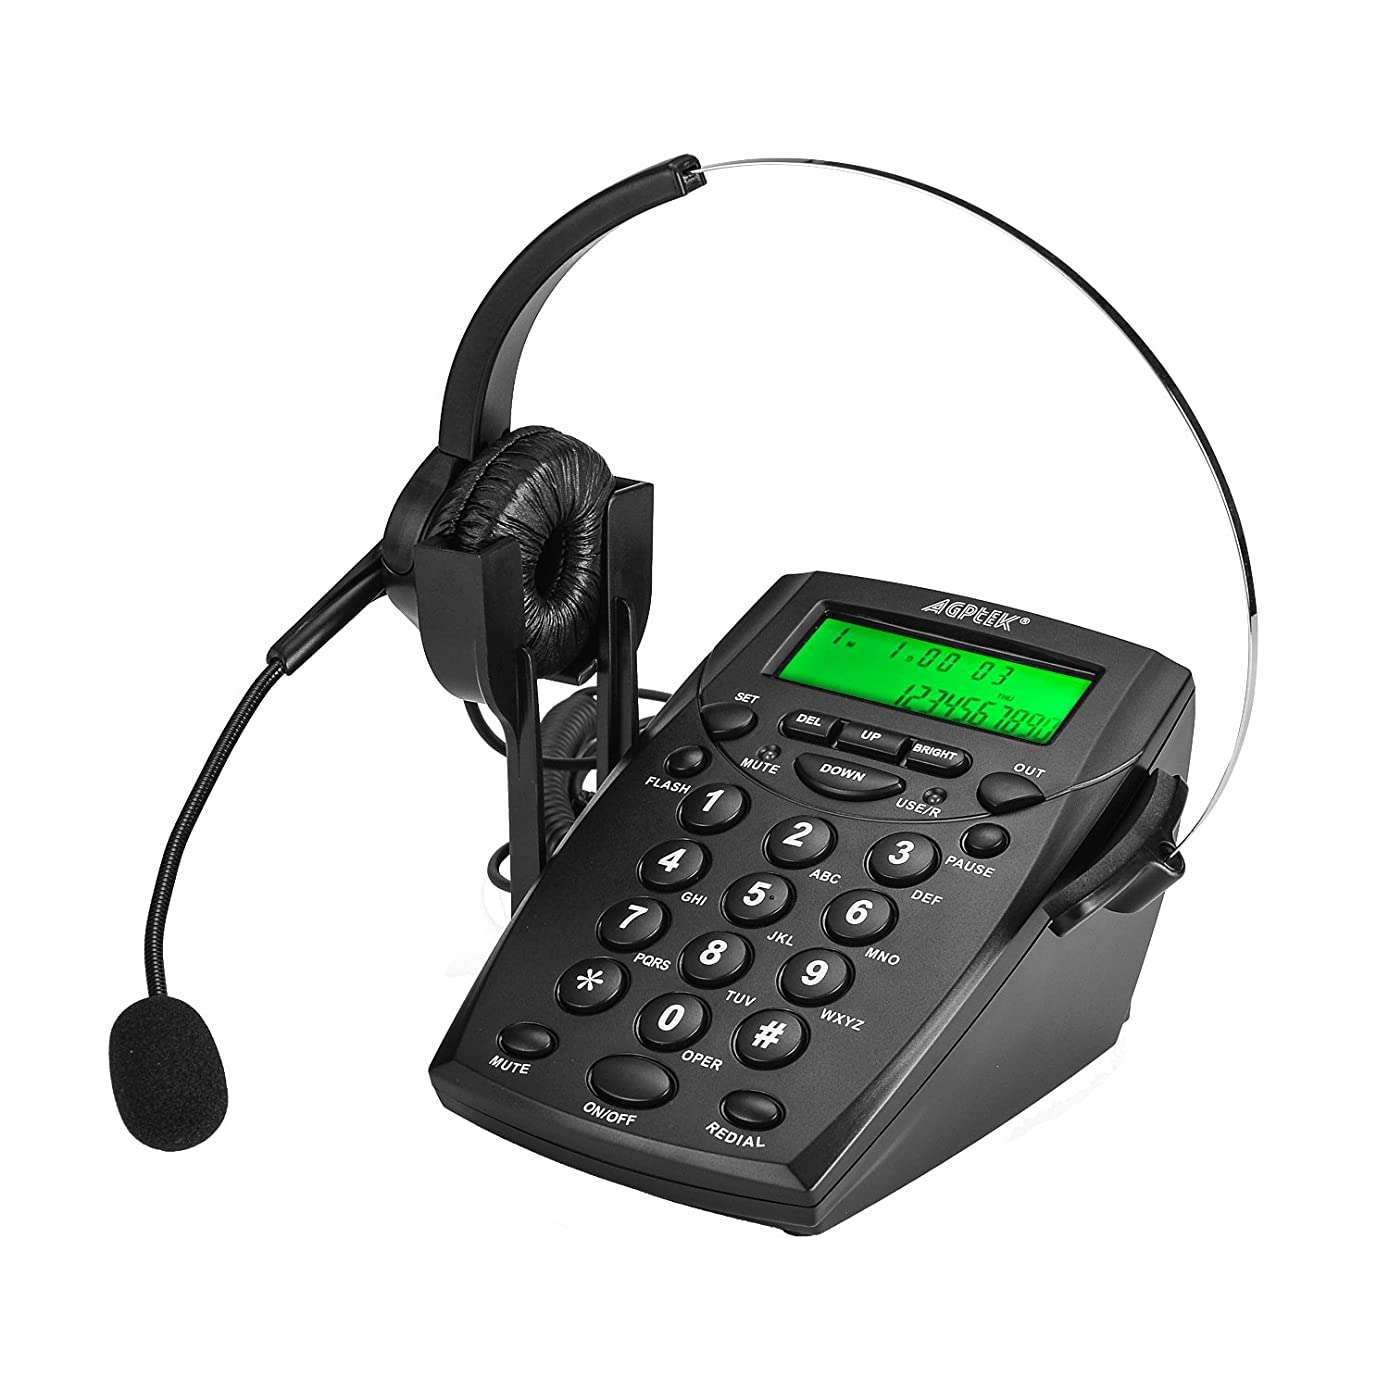 AGPtek Handsfree Call Center Dialpad Corded Telephone #HA0021 with  Monaural Headset Headphones Tone Dial Key Pad & REDIAL- 1 Year Warranty